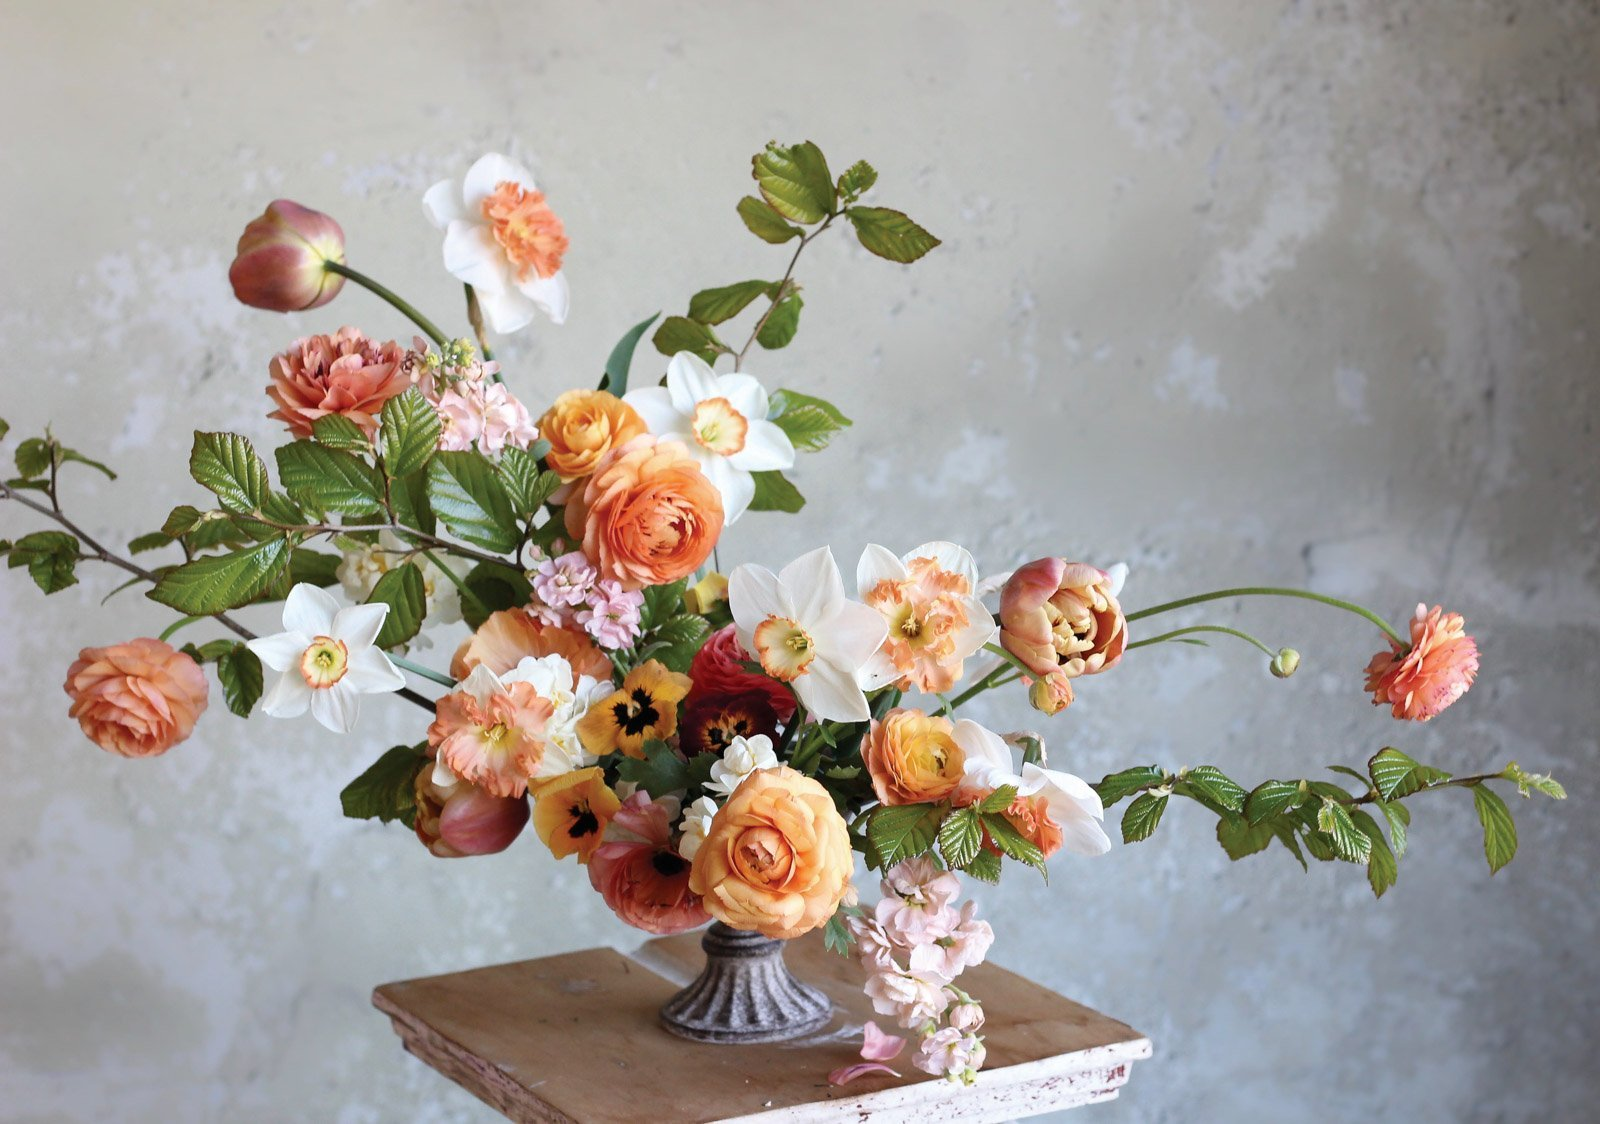 The Floristry Industry Has a Garbage Problem. Find Out Why.